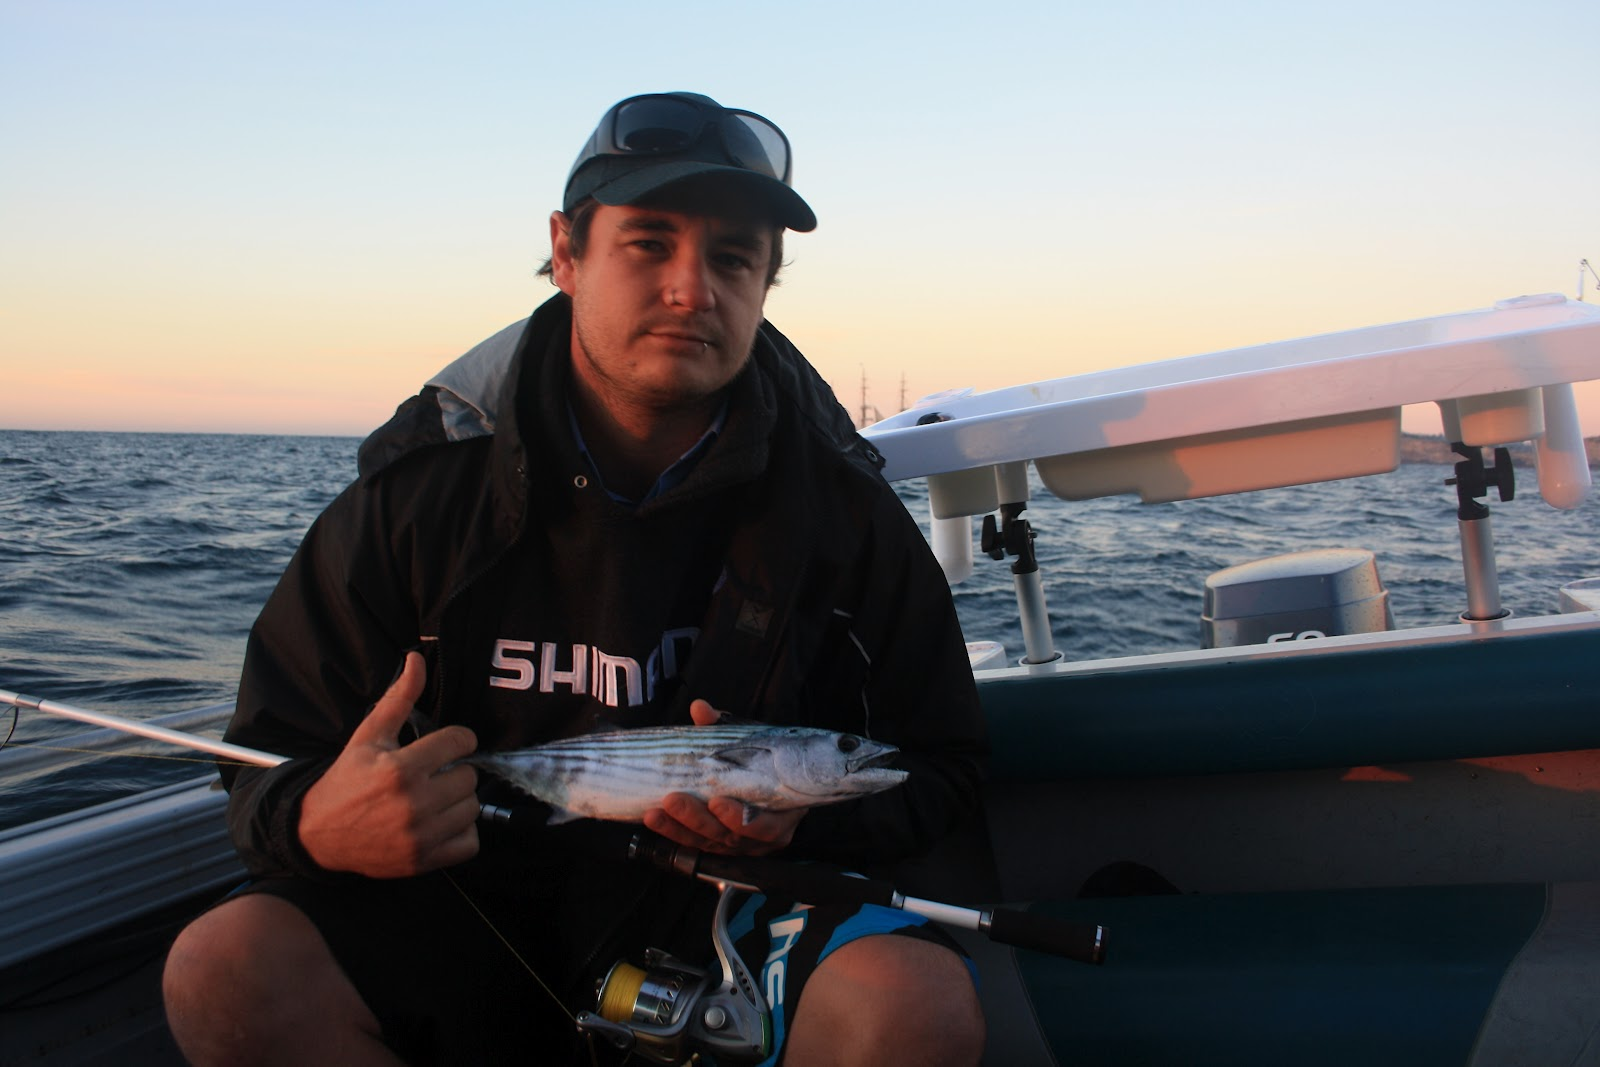 fishing wedding cakes sydney harbour the fish cure sydney harbour kingfish hunt 14292